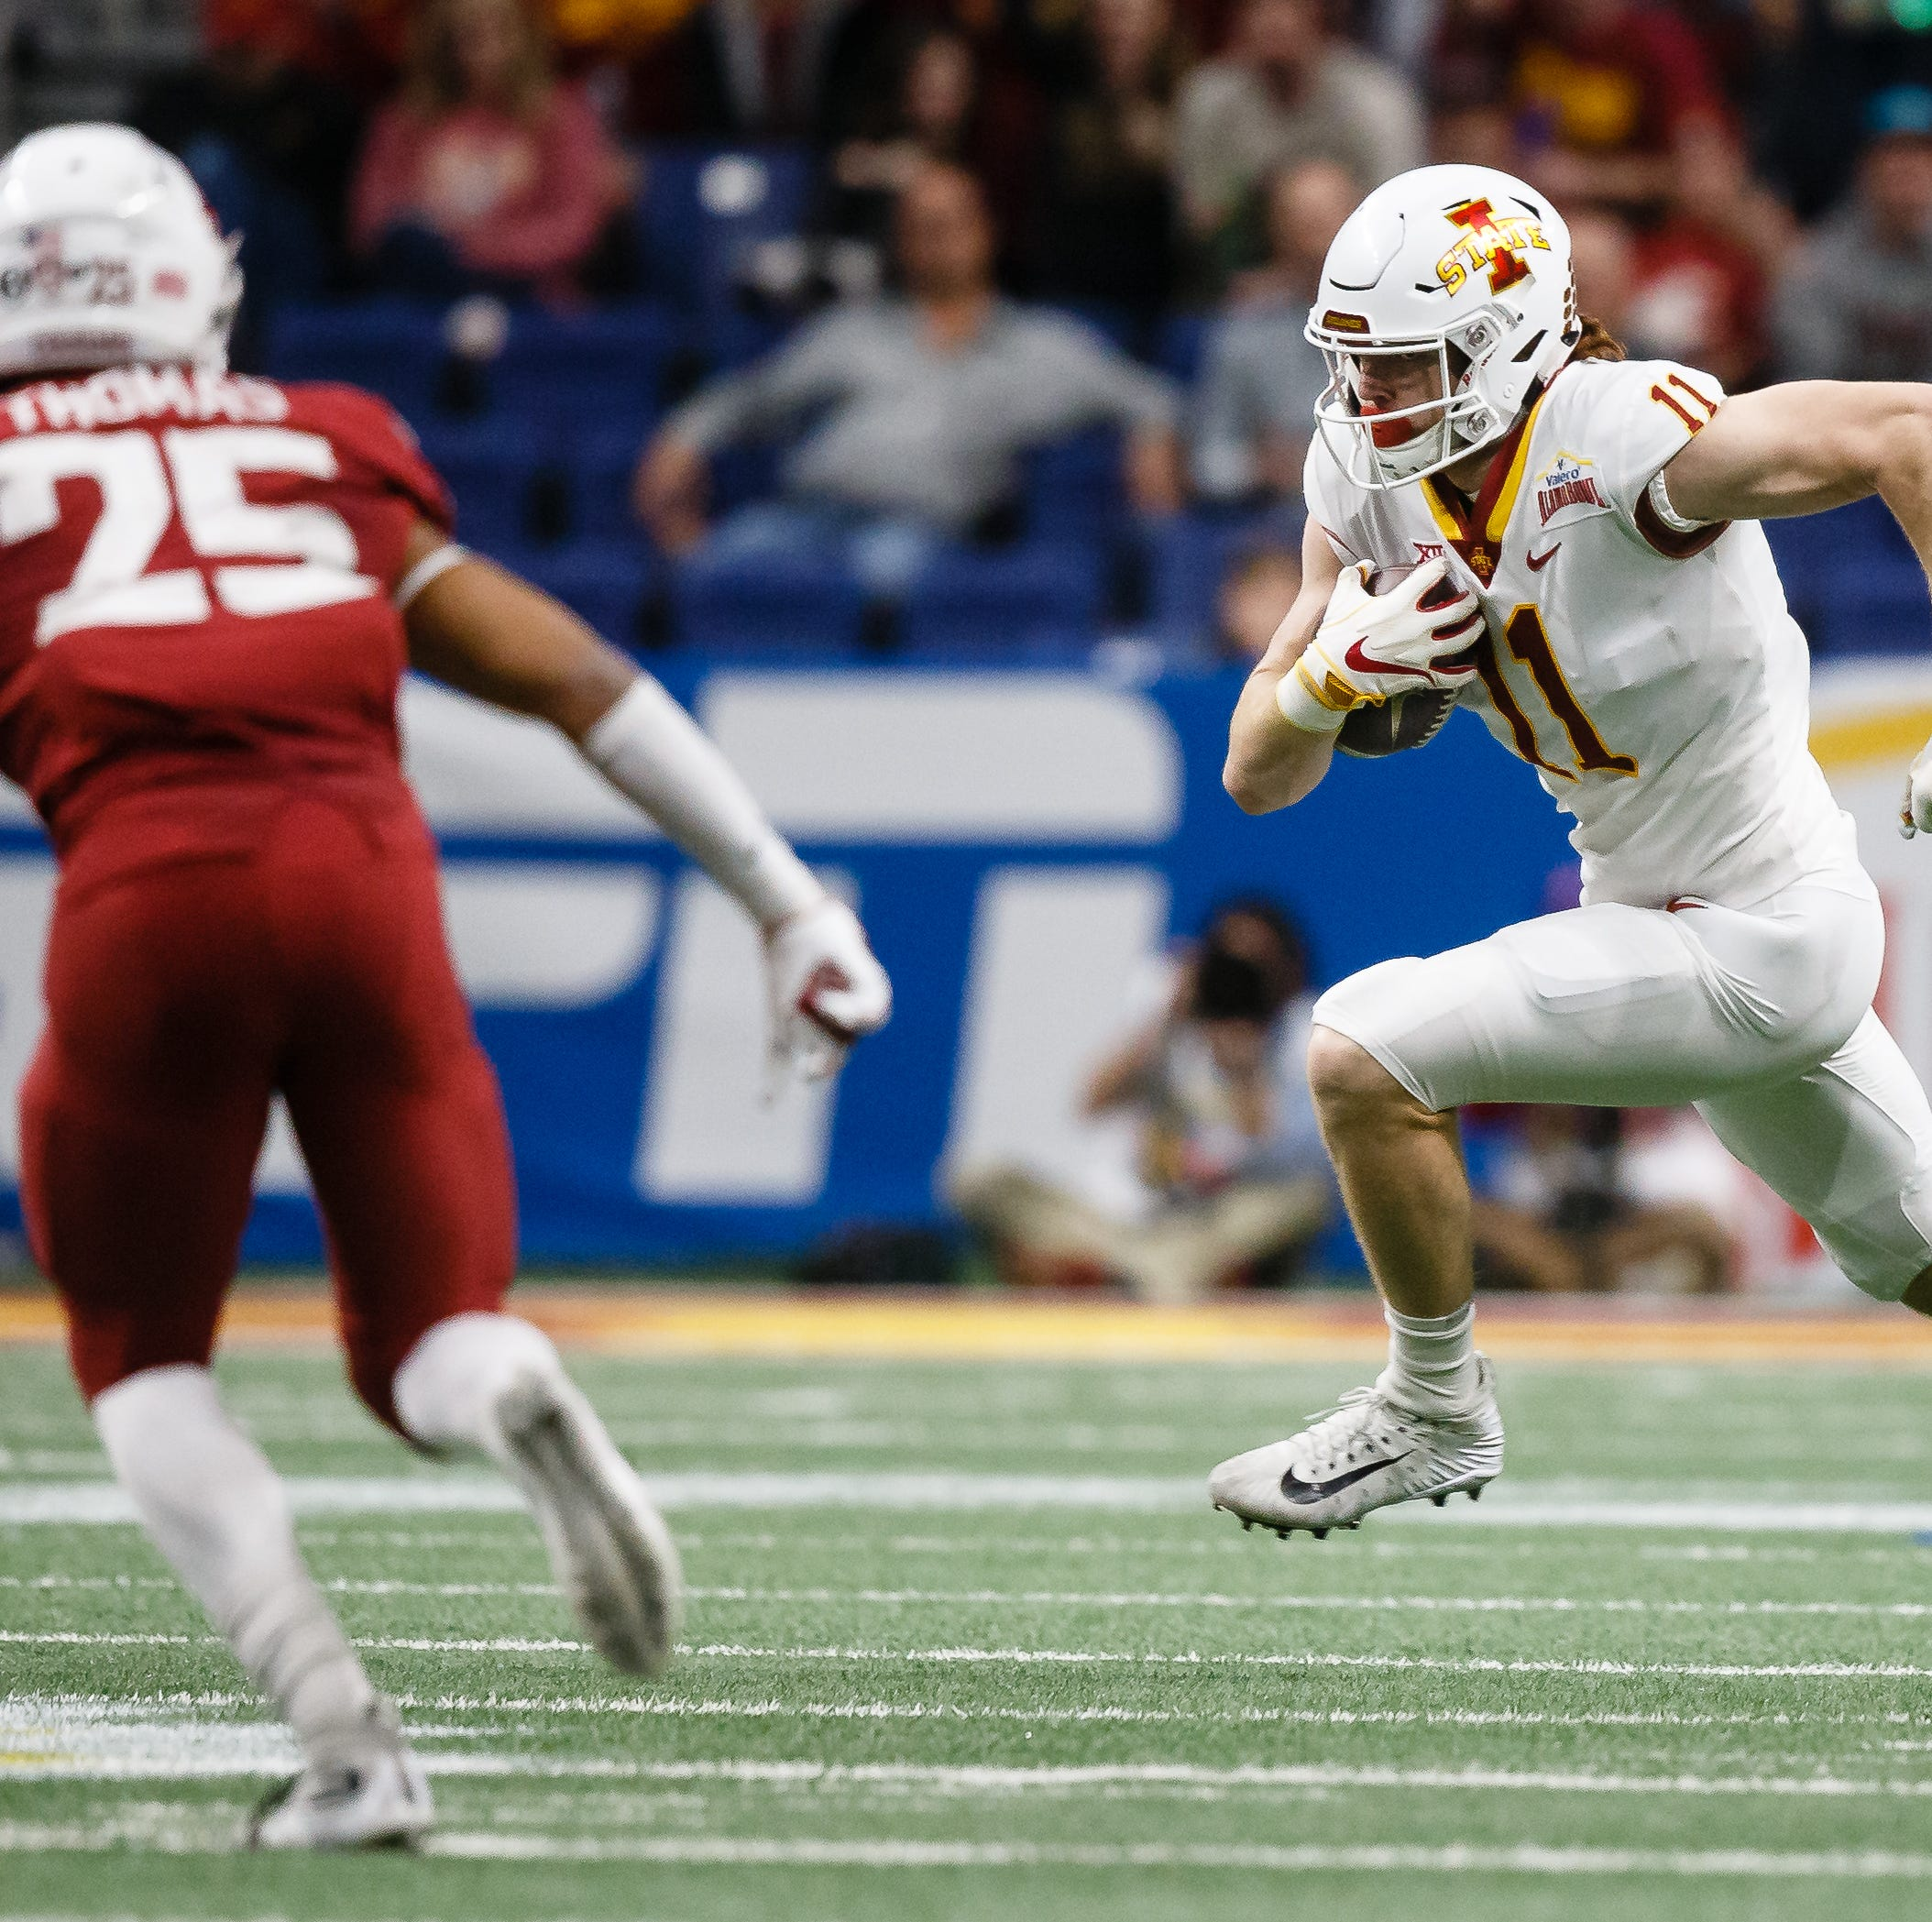 Iowa State's Chase Allen fully recovered after another painful season